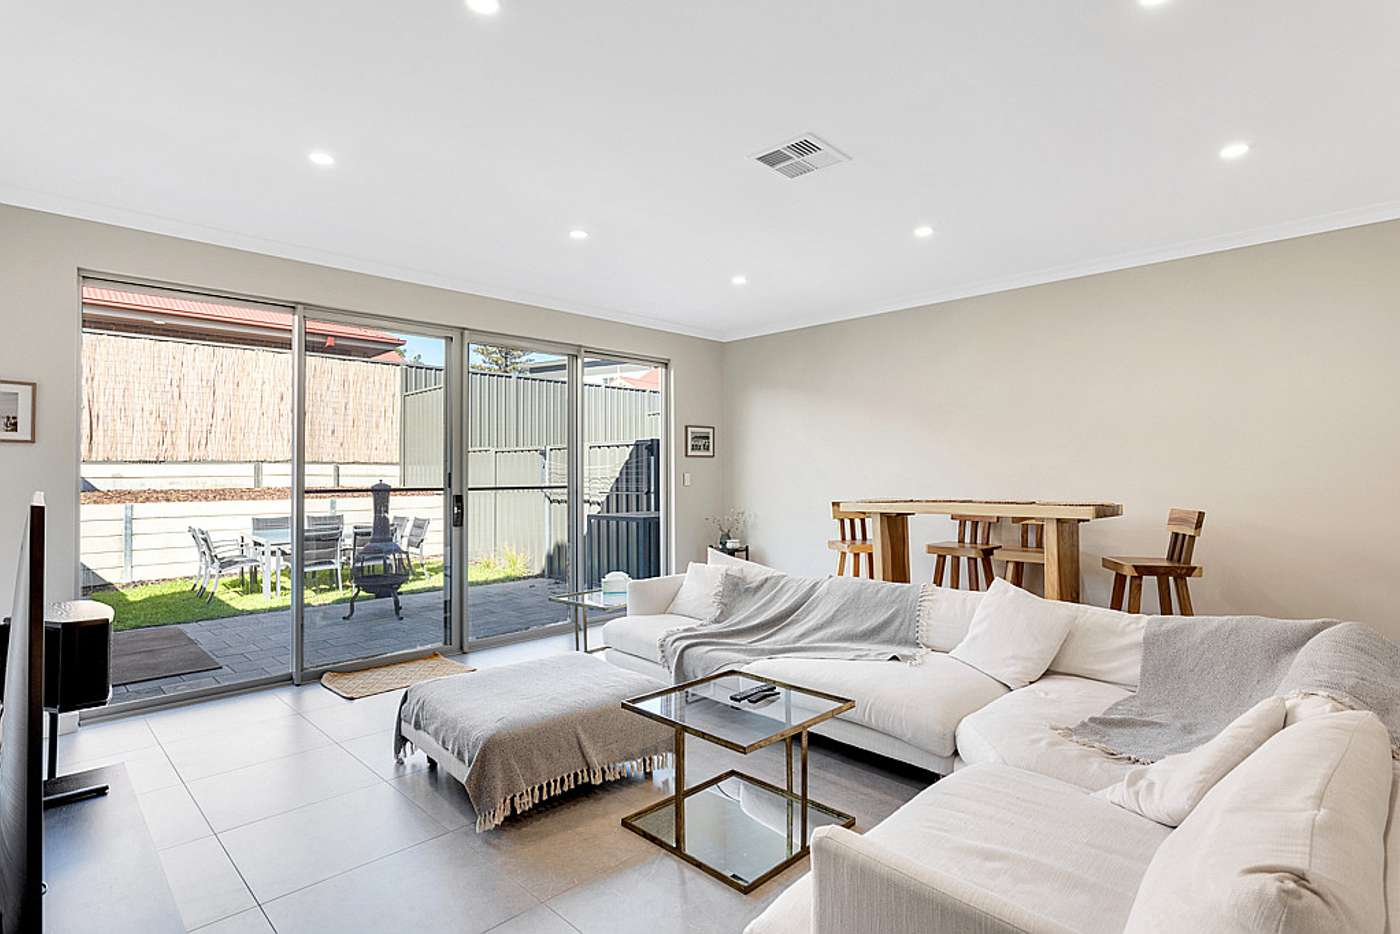 Sixth view of Homely house listing, 3/36 Clement Terrace, Christies Beach SA 5165